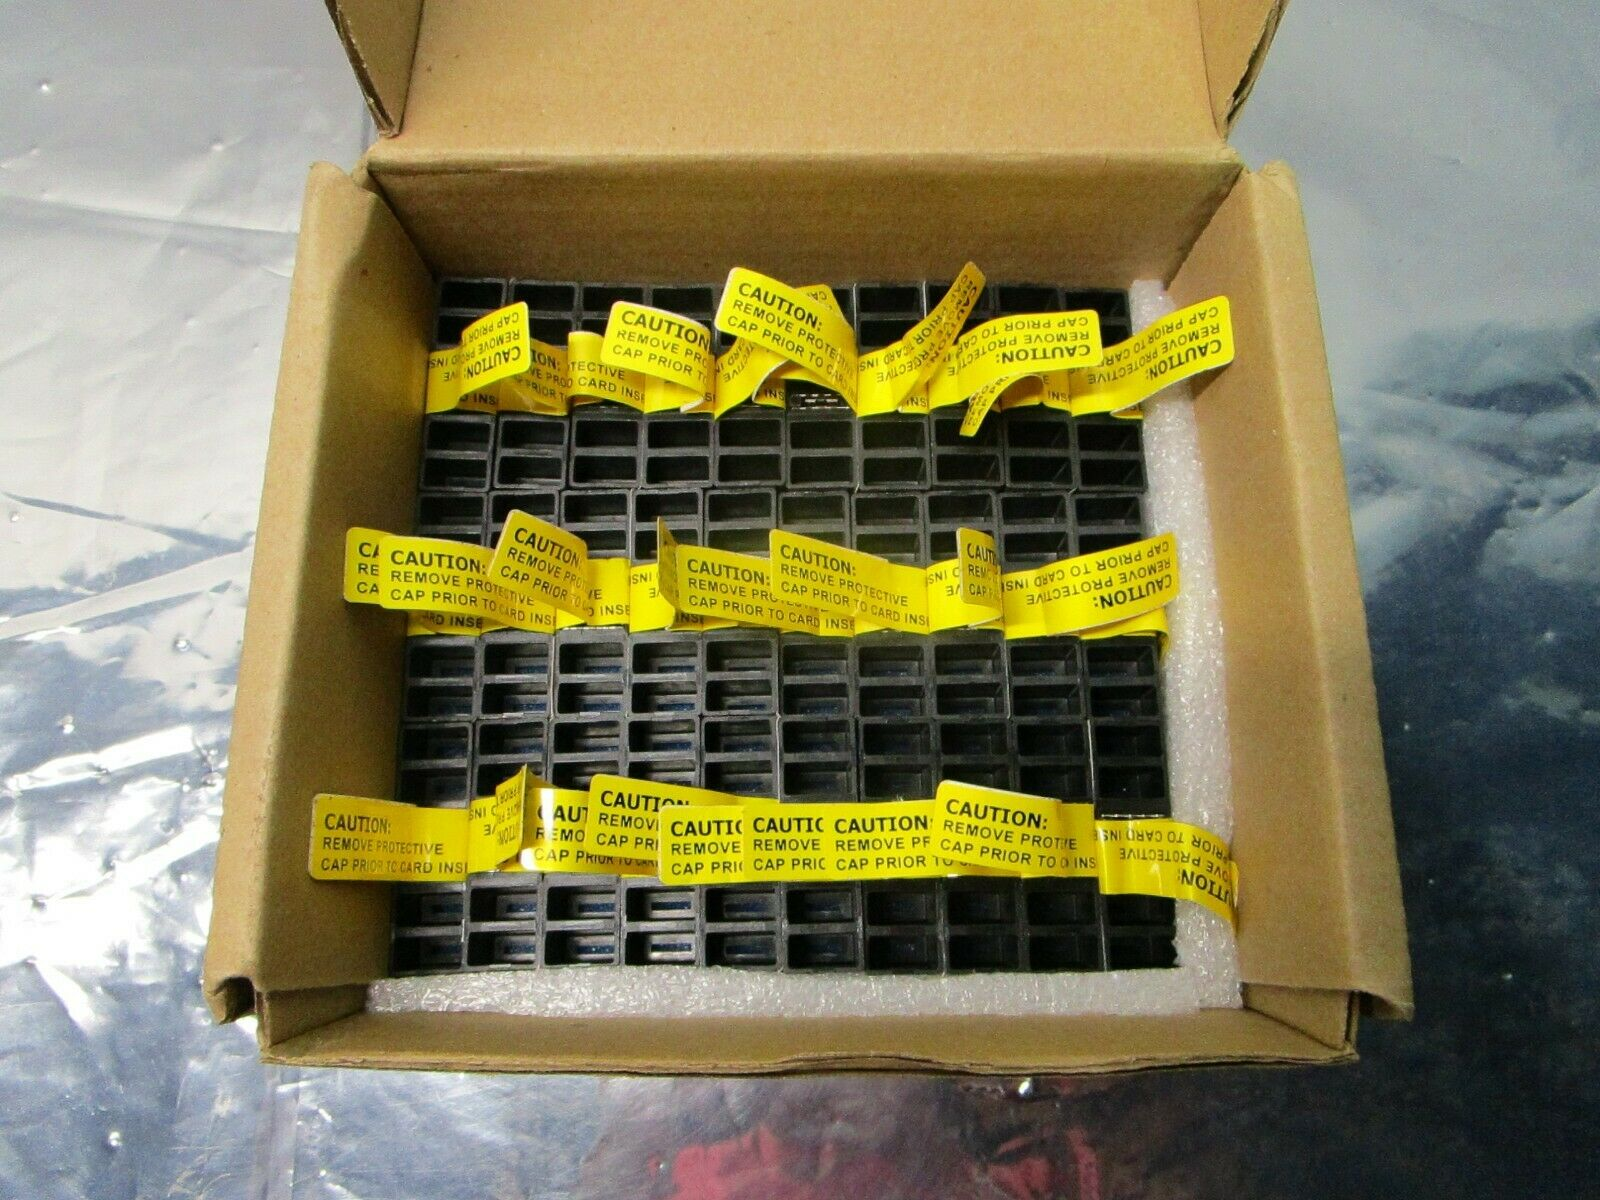 1 Lot of 30 TE connectivity 1926303-1 Heavy Duty Power Connectors Cover, 102514